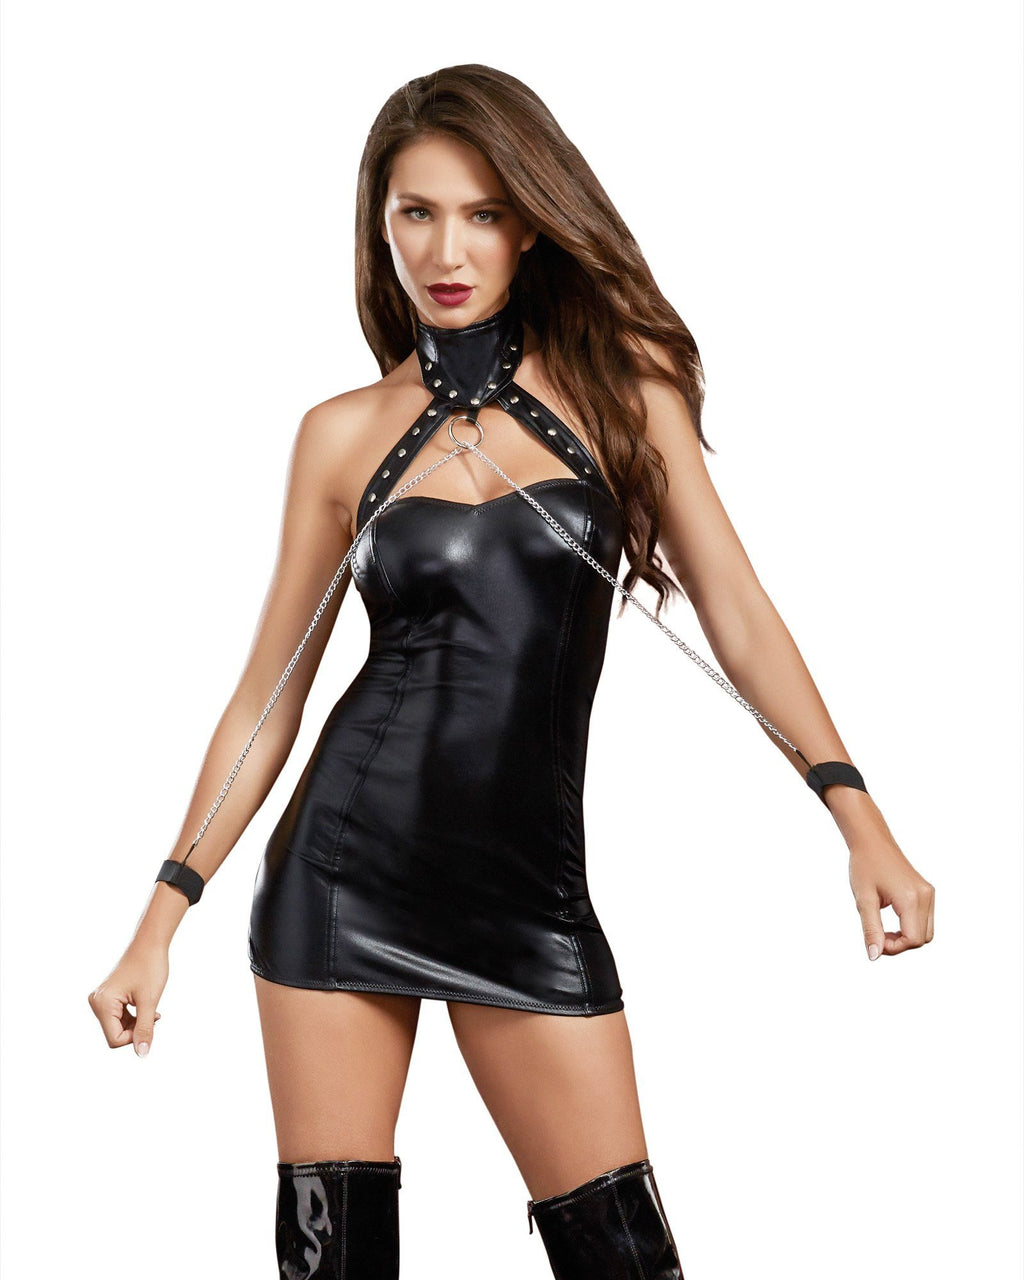 Leather-Look Knit Collared Chemise with Chain Restraints Fetish Dreamgirl International